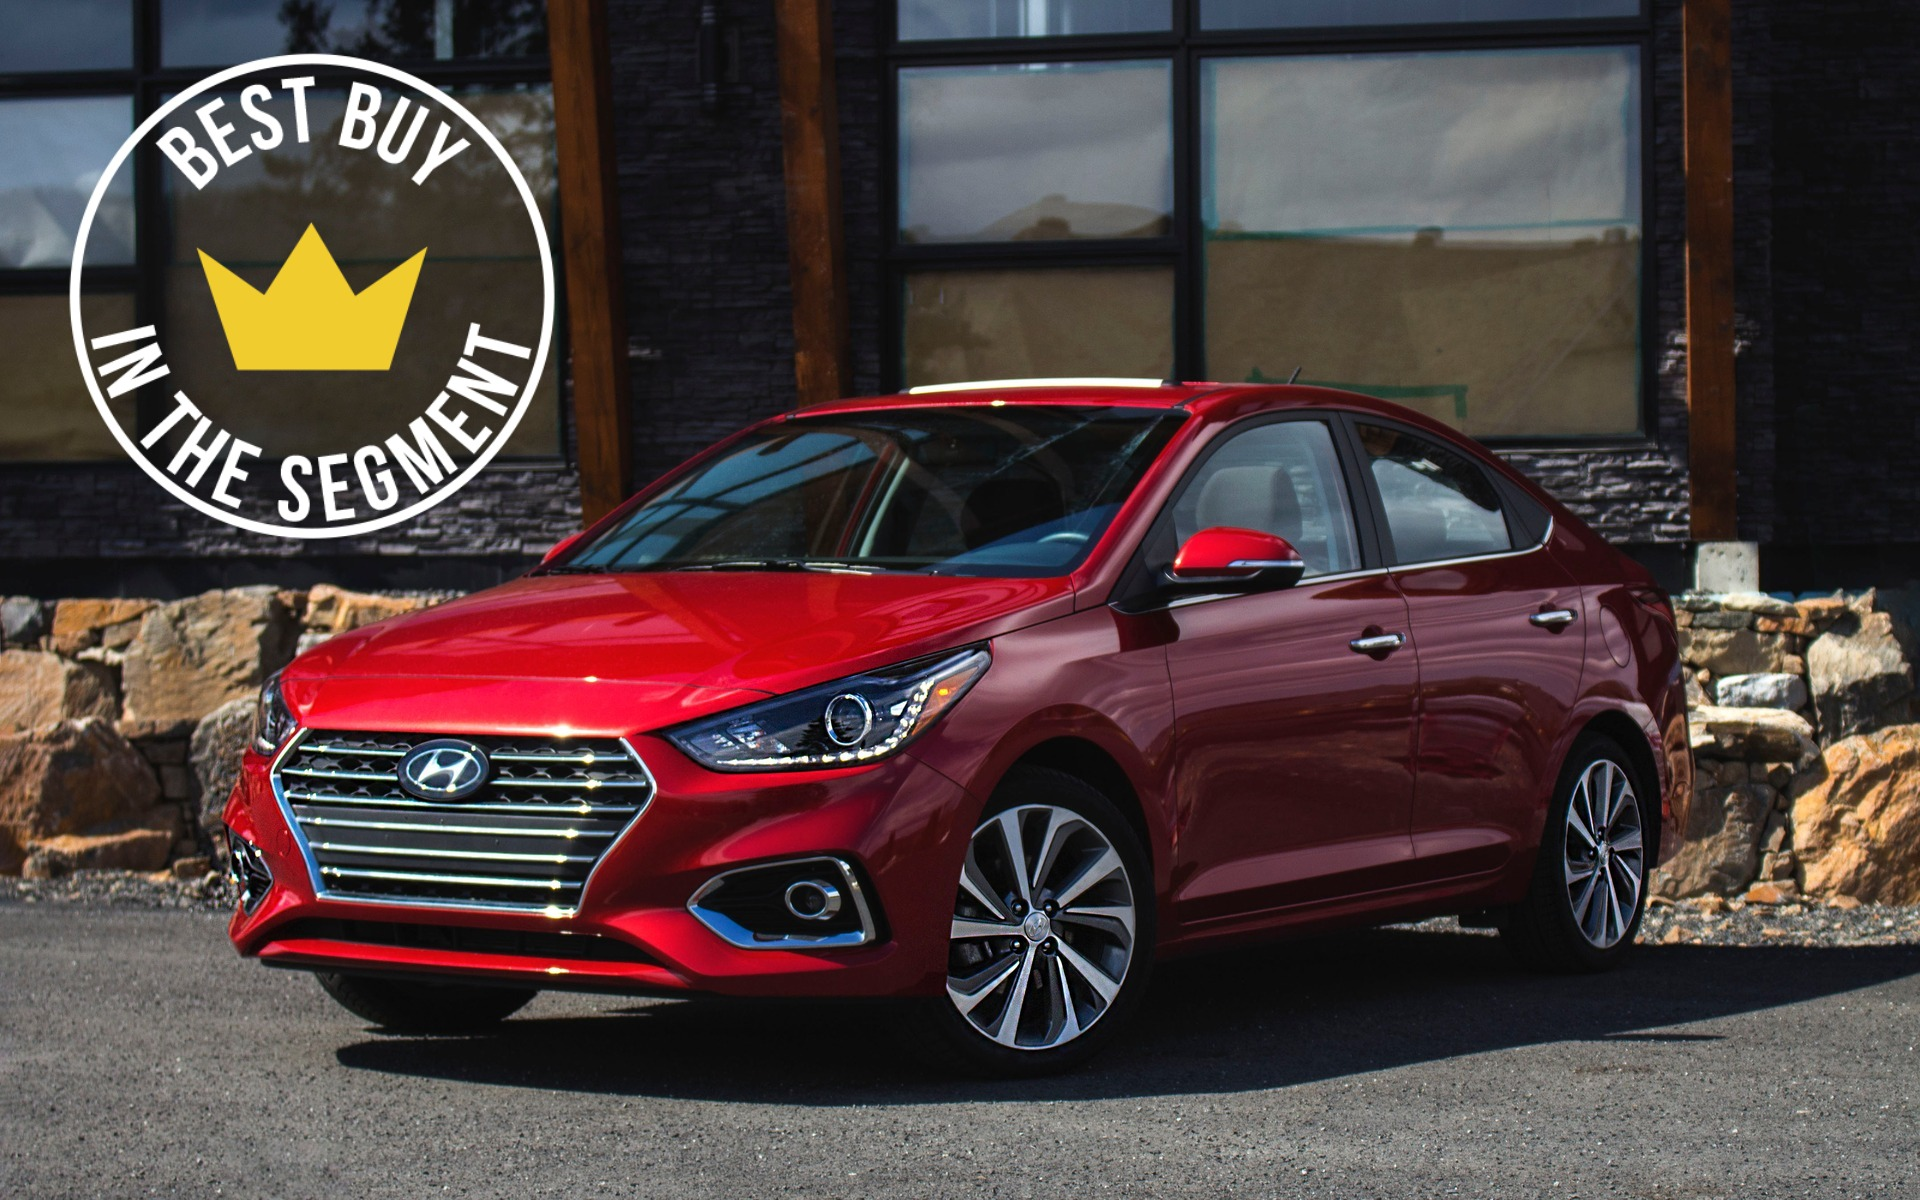 Hyundai Accent Hatchback >> The Car Guide's 2019 Best Buys: Hyundai Accent - The Car Guide